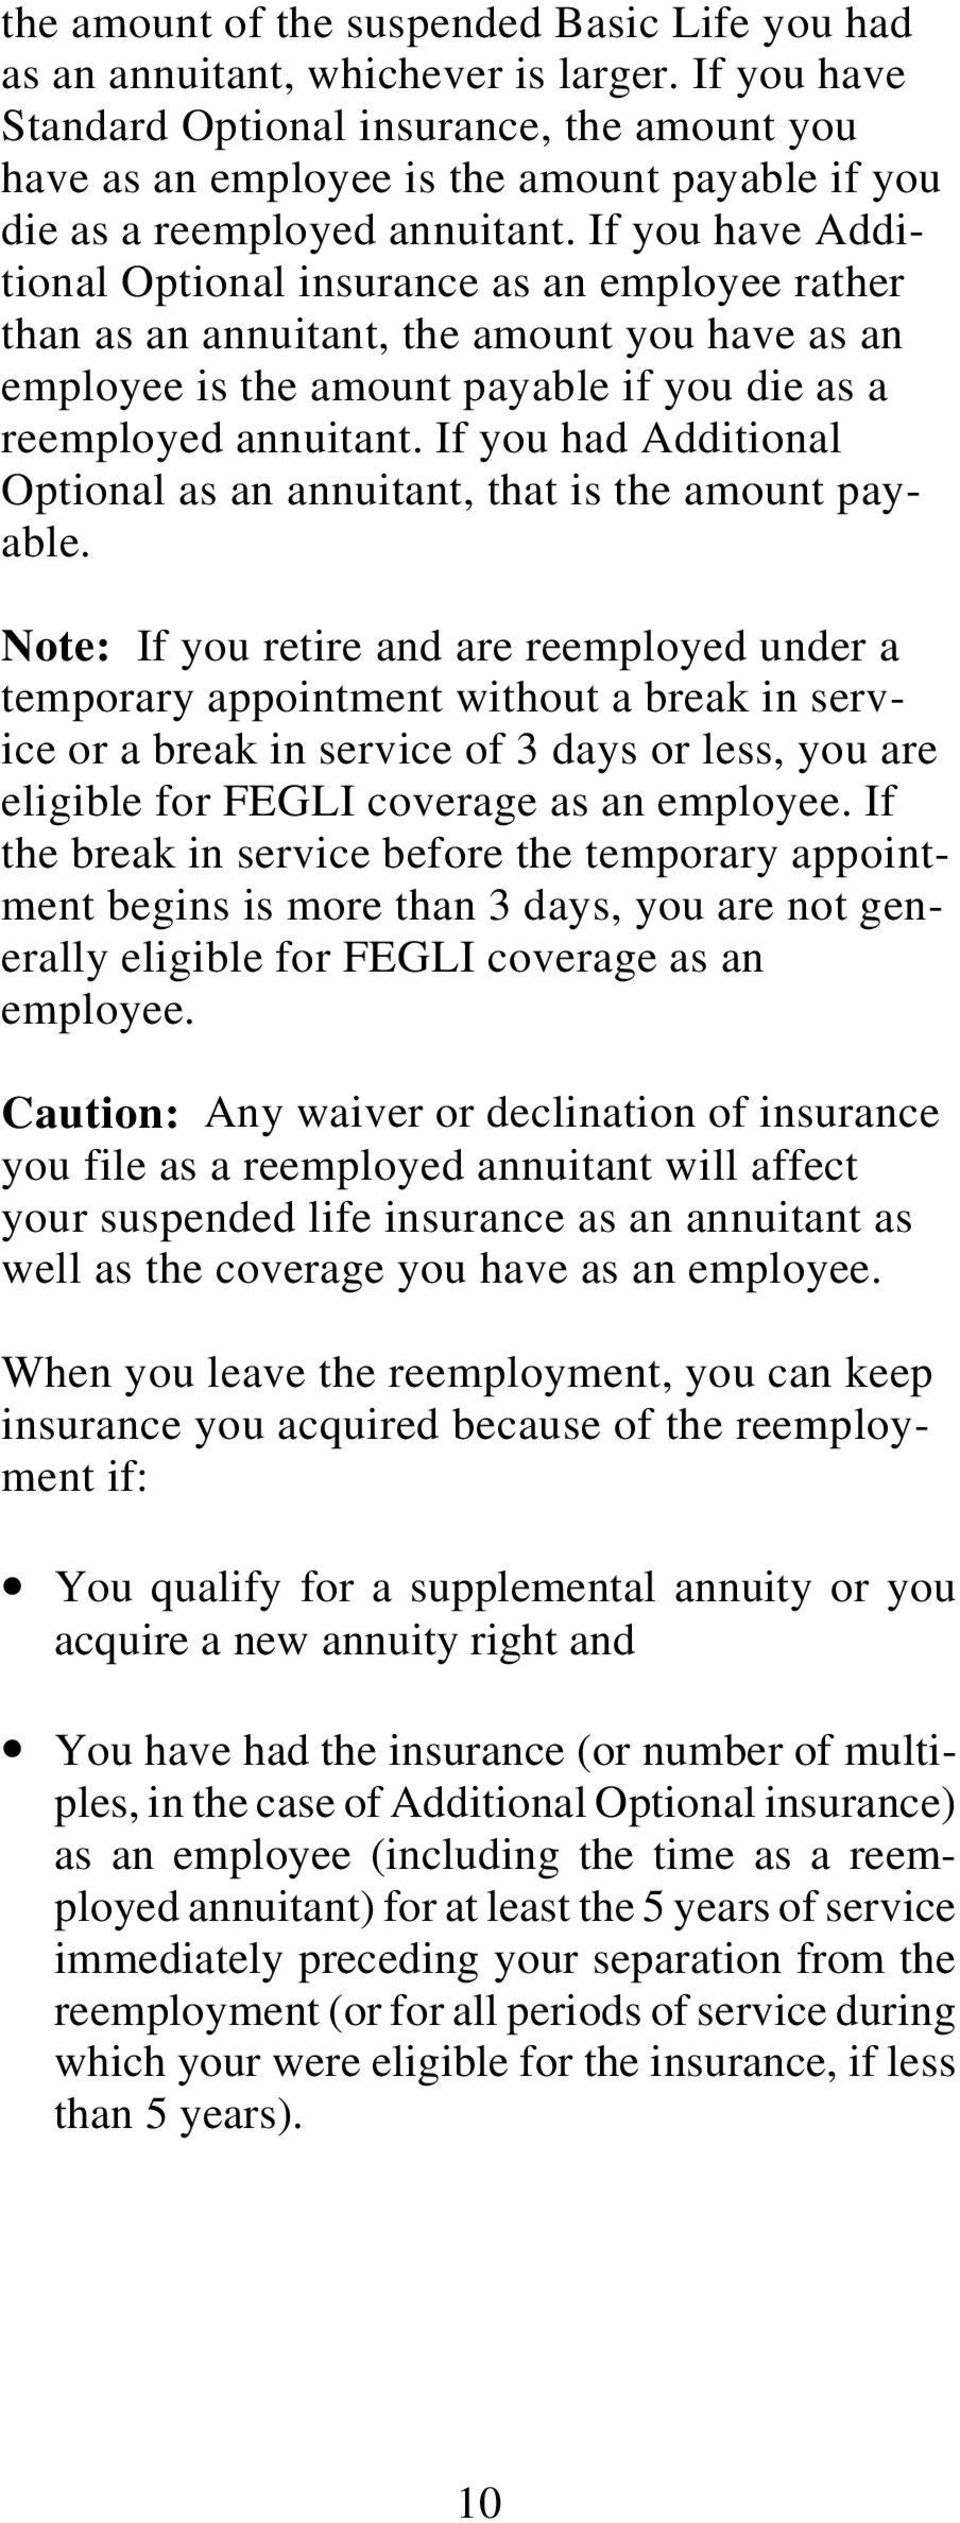 If you have Additional Optional insurance as an employee rather than as an annuitant, the amount you have as an employee is the amount payable if you die as a reemployed annuitant.